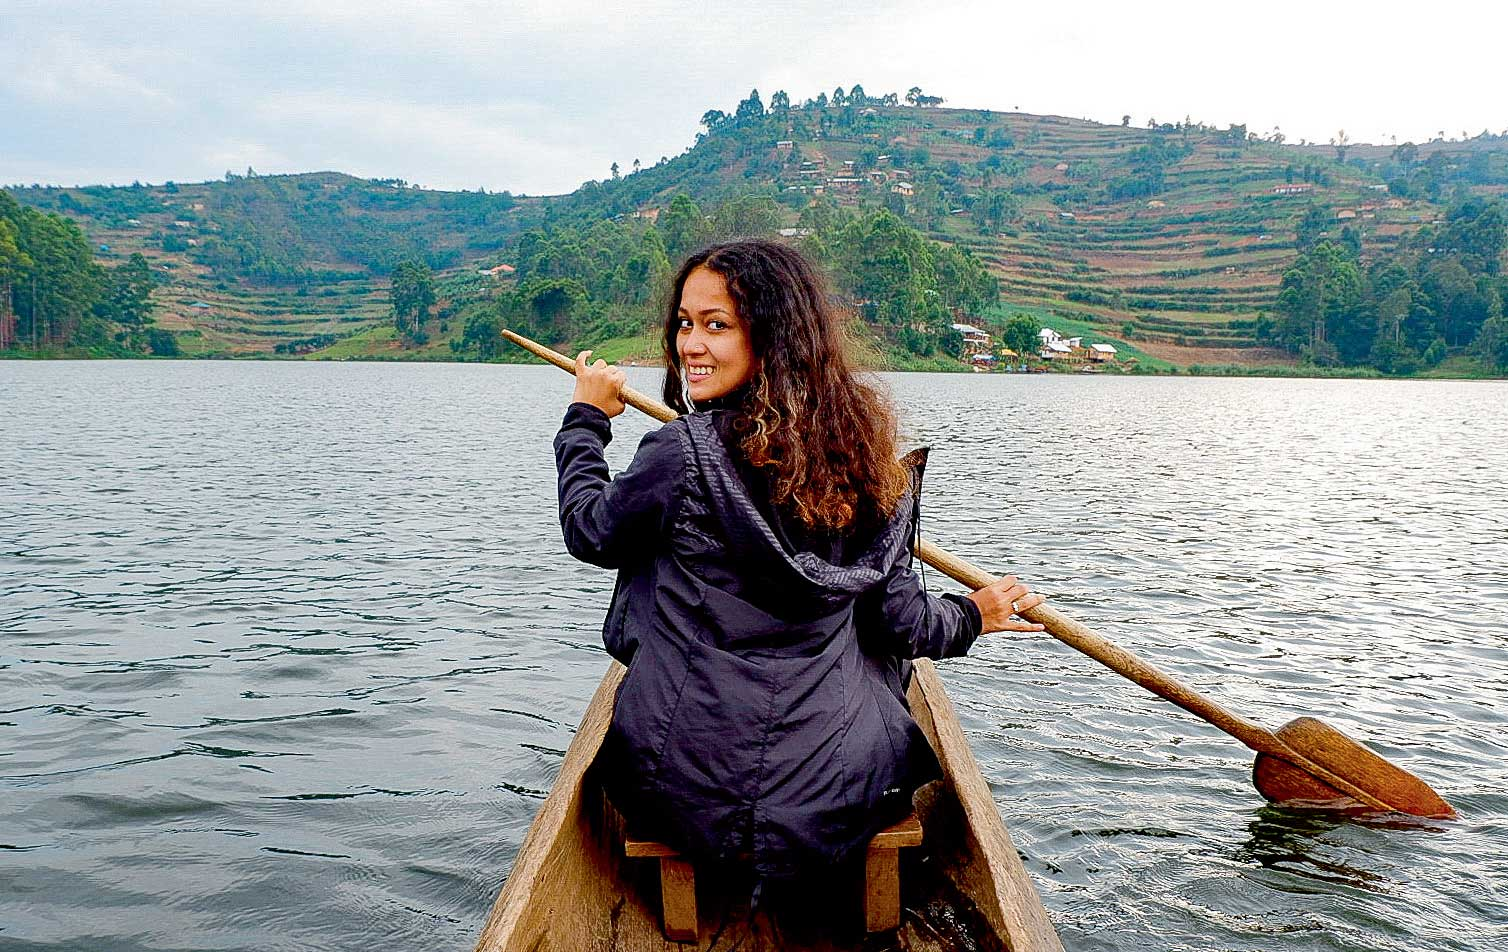 This woman's 24 and has visited 25 countries in 2 years. Jealous?